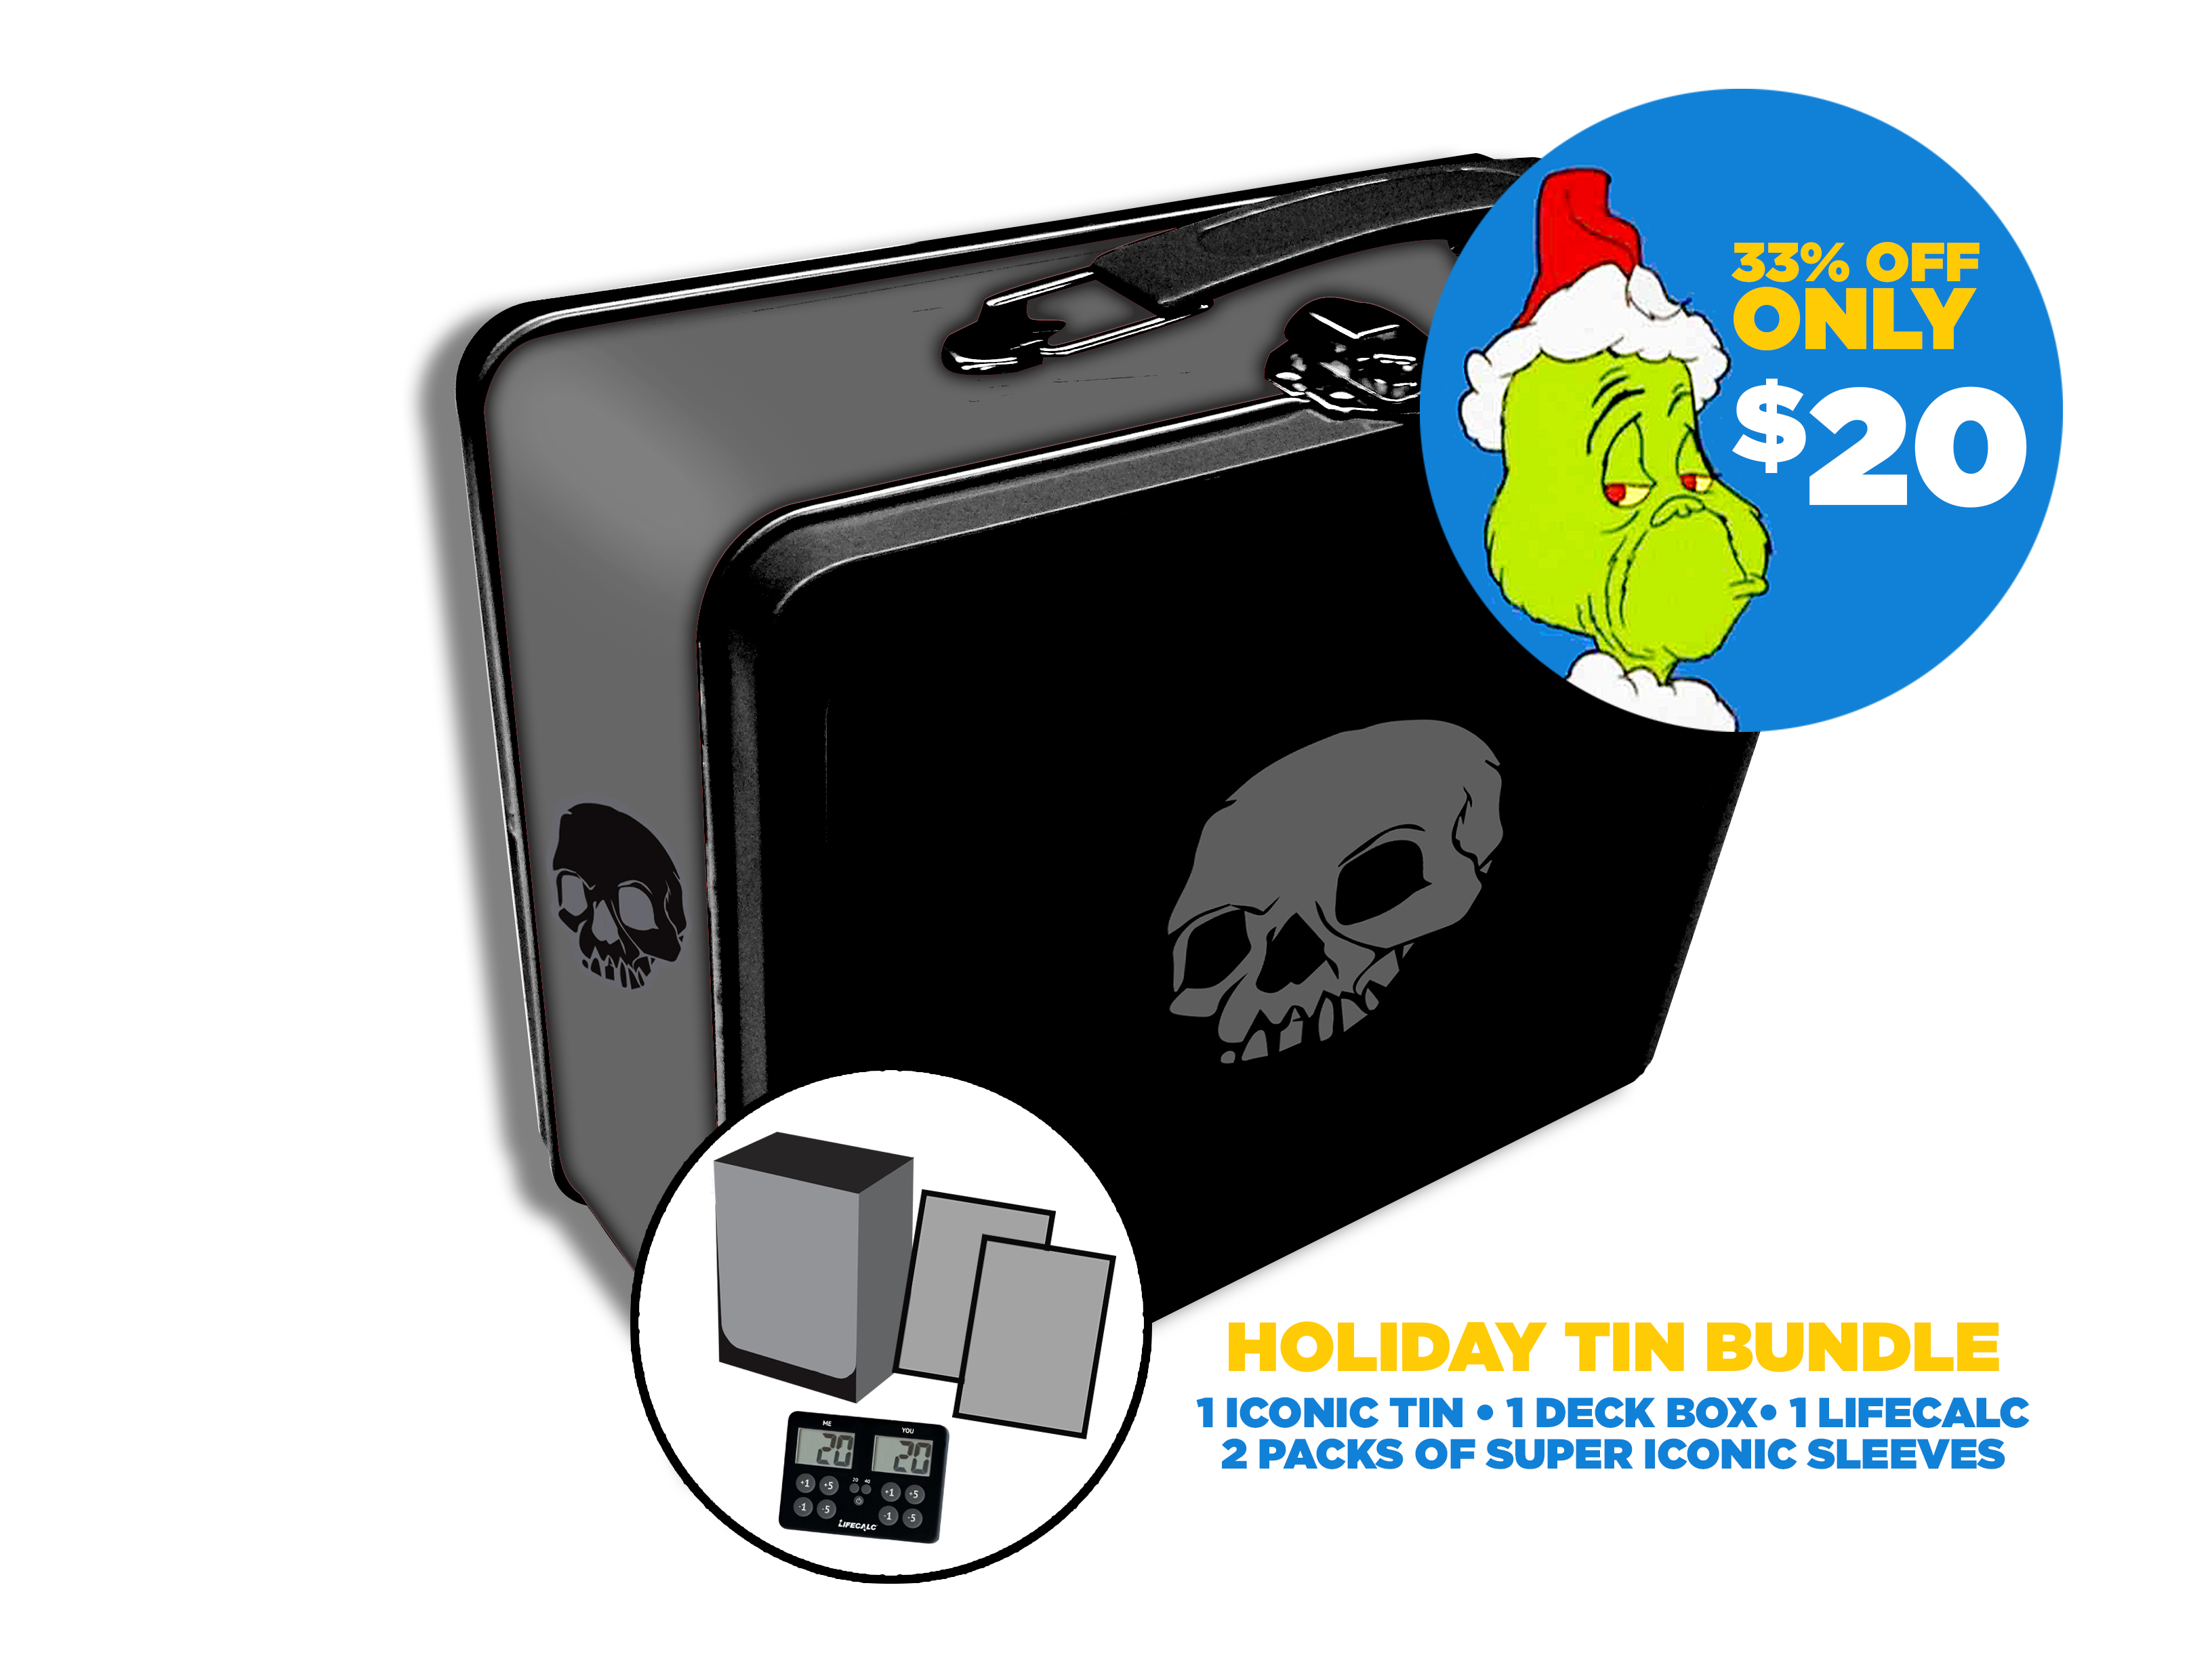 Iconic Skull Holiday Bundle